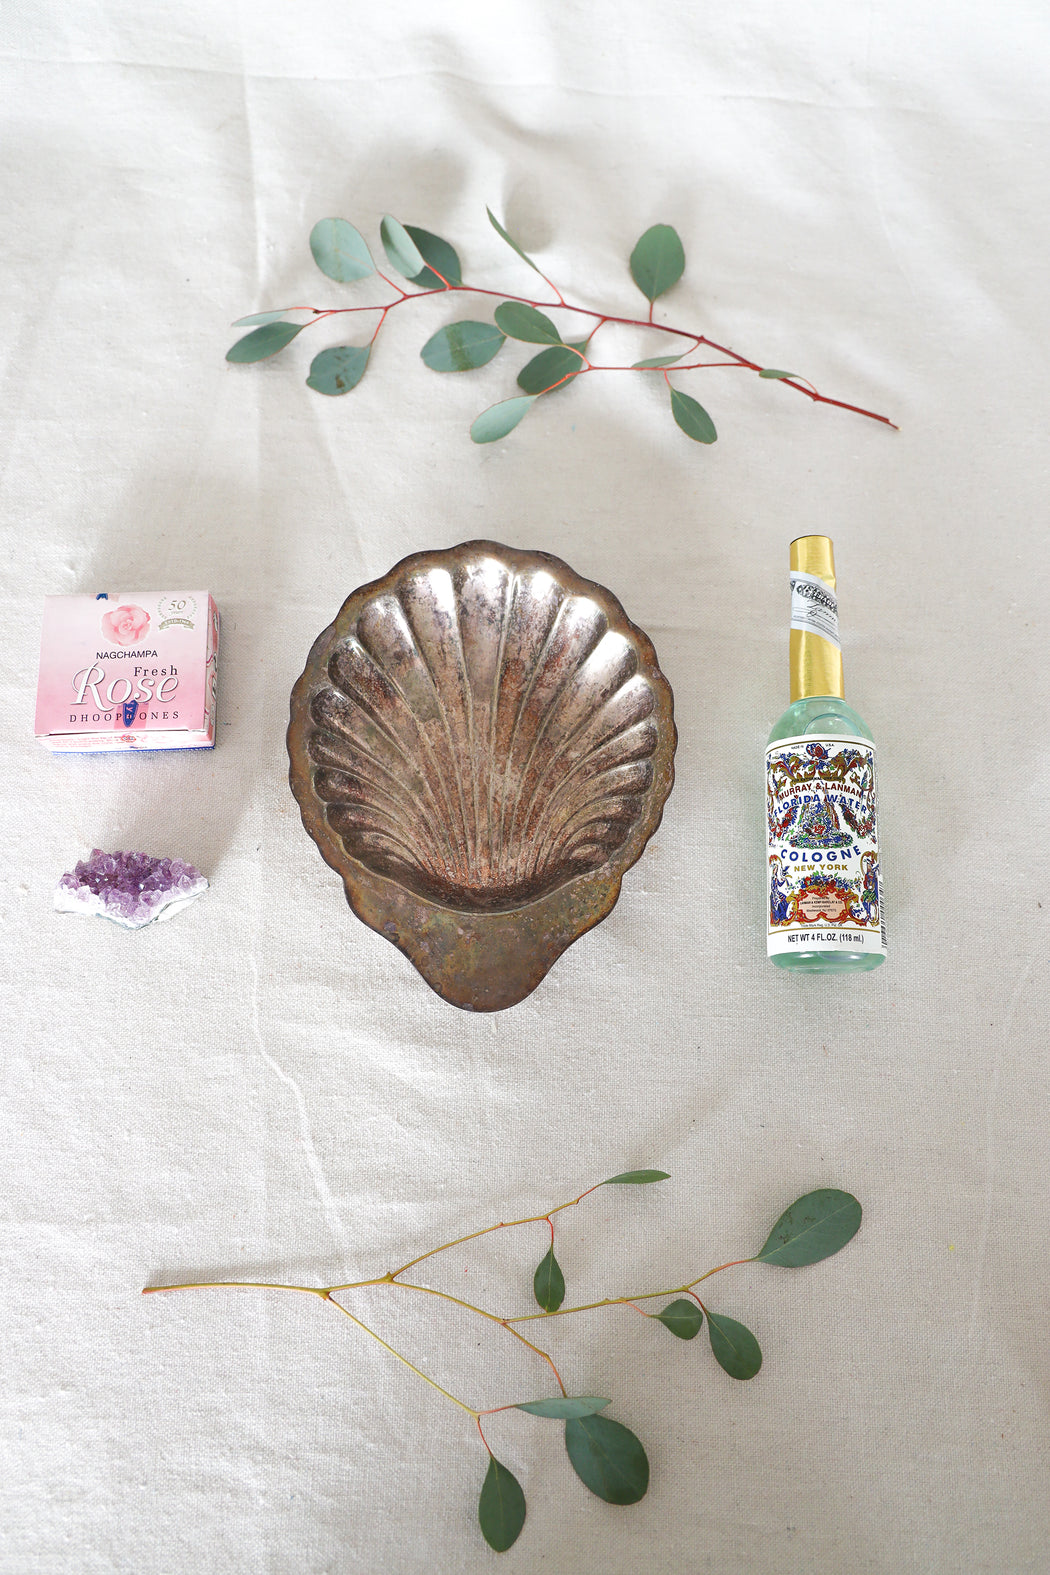 Intuition Nourishing Kit with Antique Seashell Dish